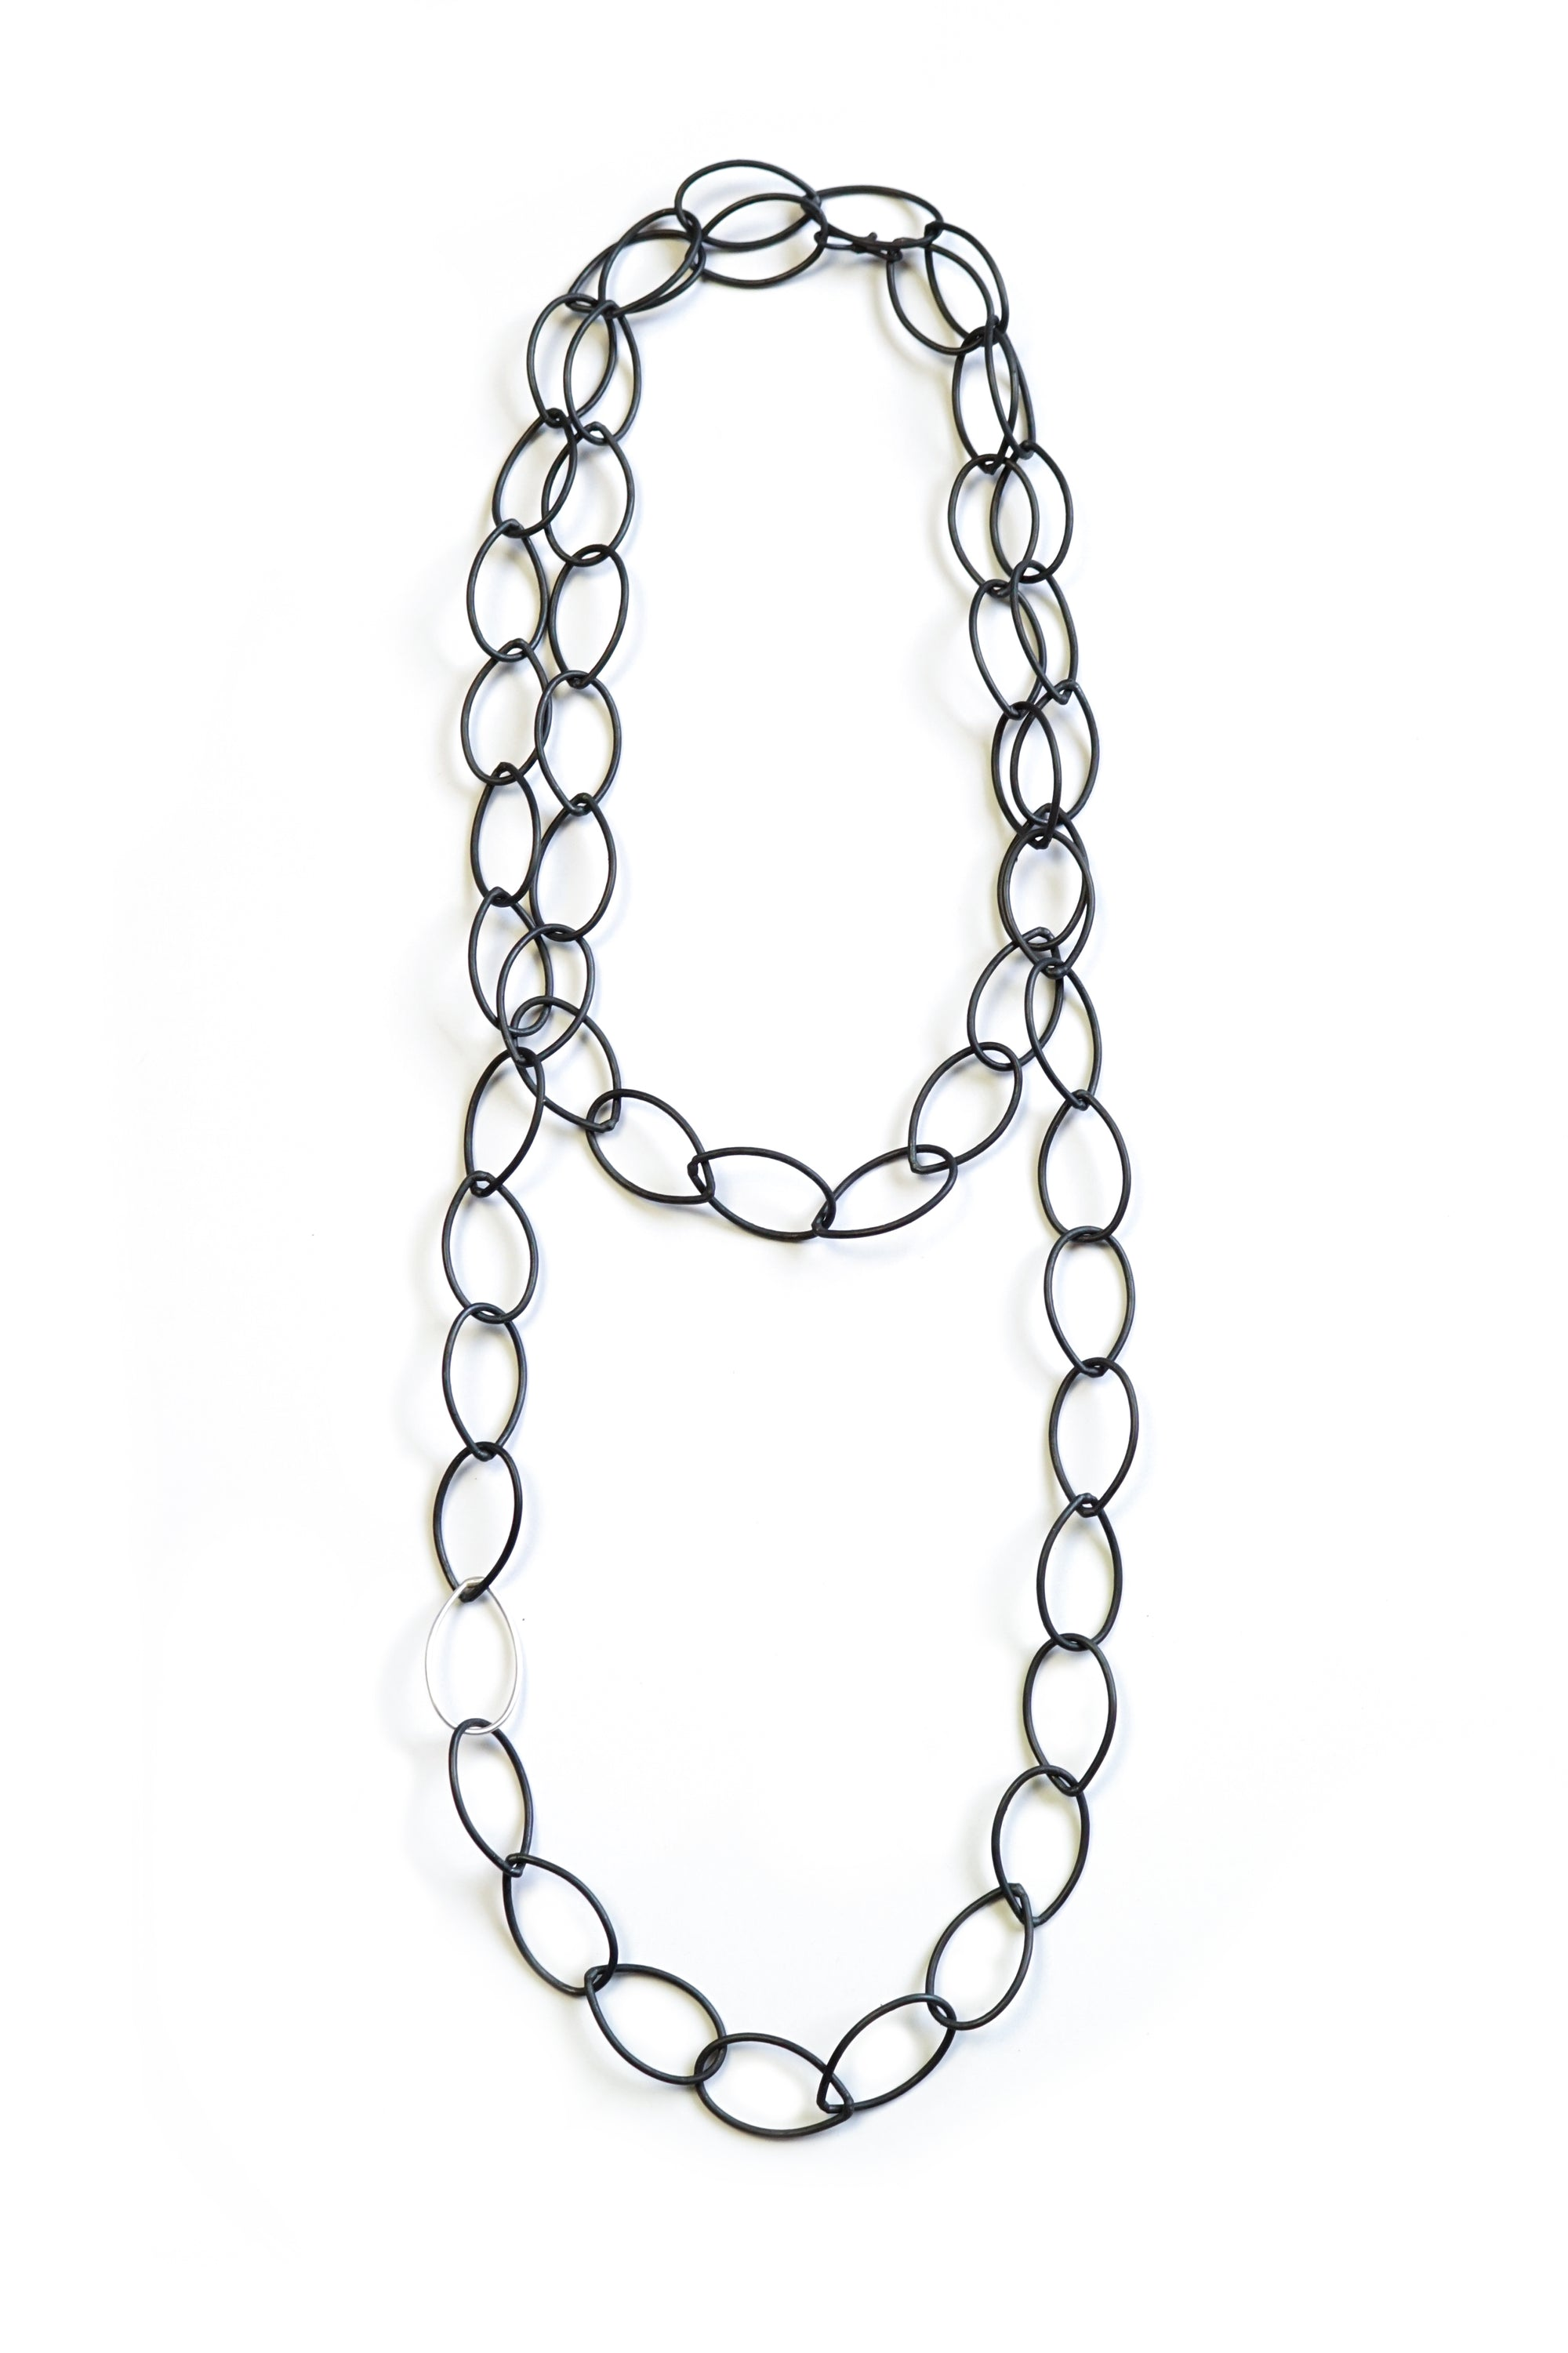 Lucy necklace - steel with silver accent